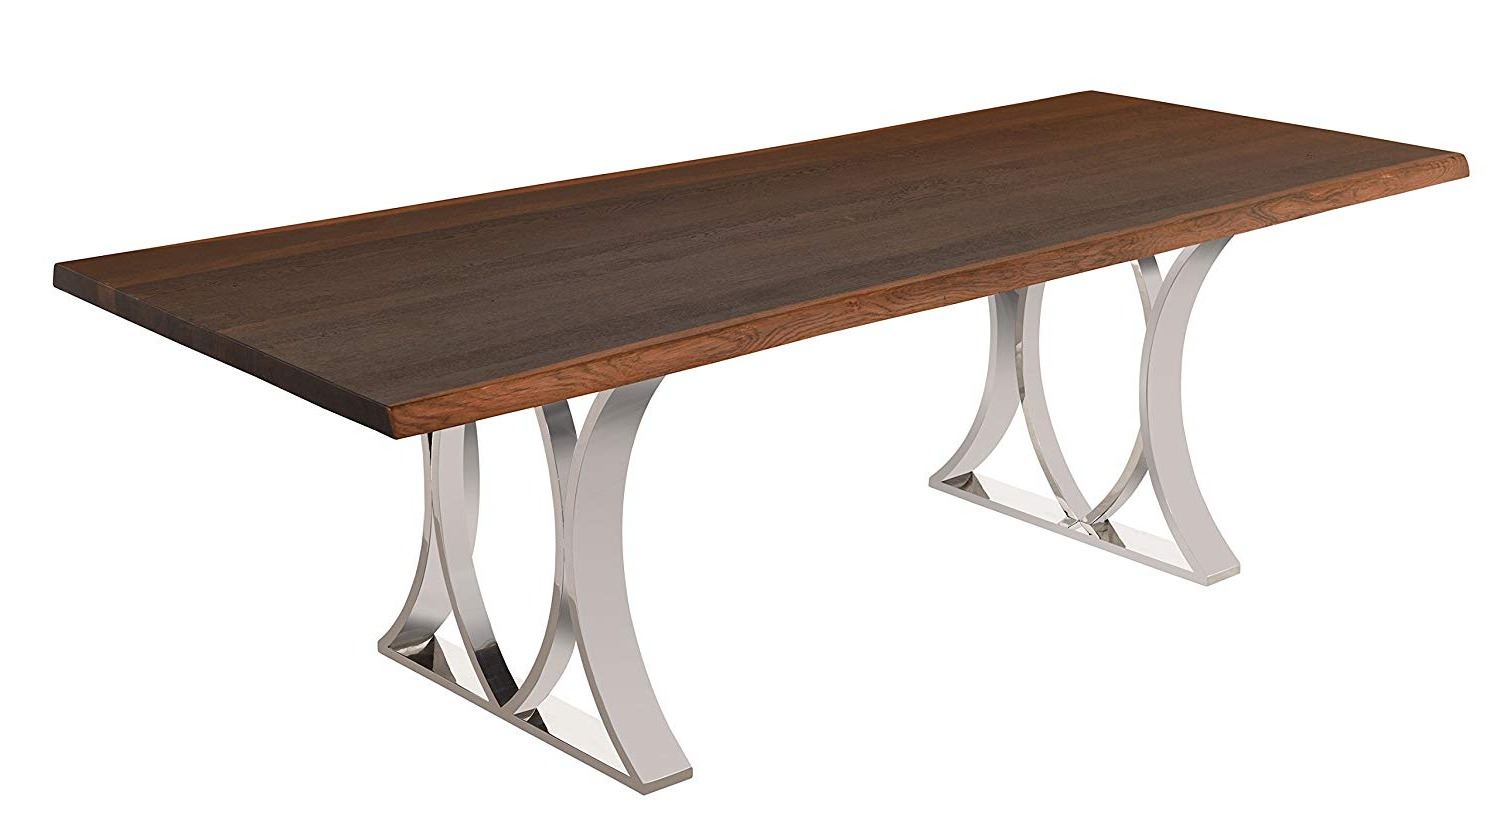 Favorite Dining Tables In Smoked Seared Oak Regarding Amazon – Nuevo Rectangular Mila Dining Table With Matte (Gallery 8 of 30)